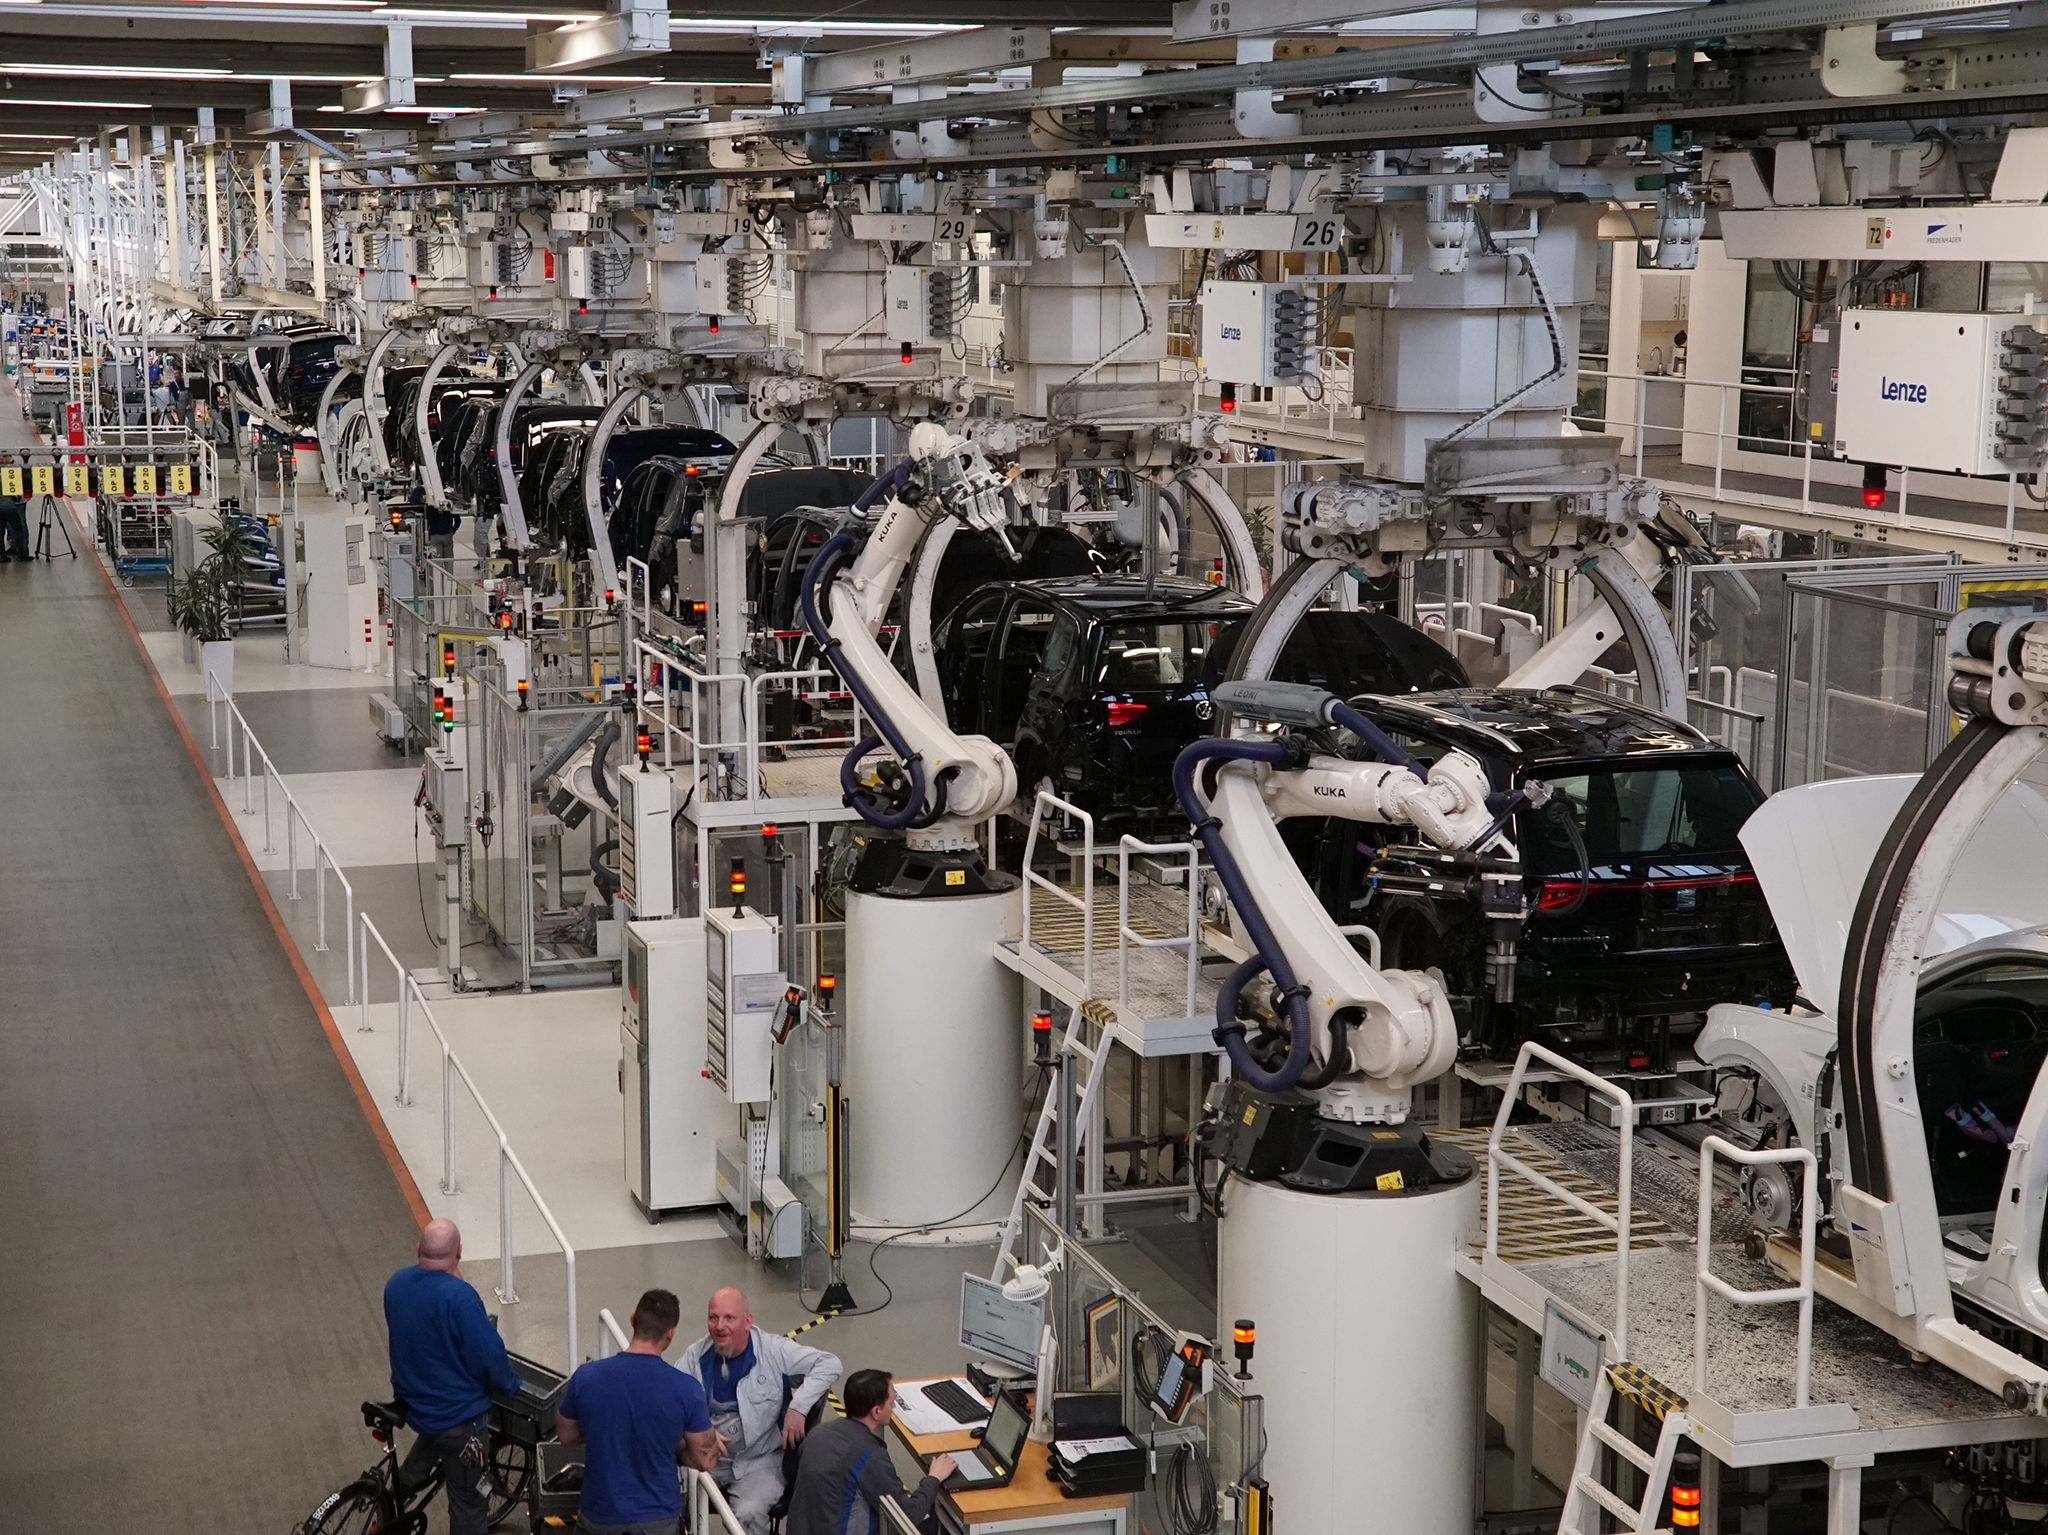 The Volkswagen production line. This image is from Superstructures: Engineering Marvels. [Photo of the day - May 2019]